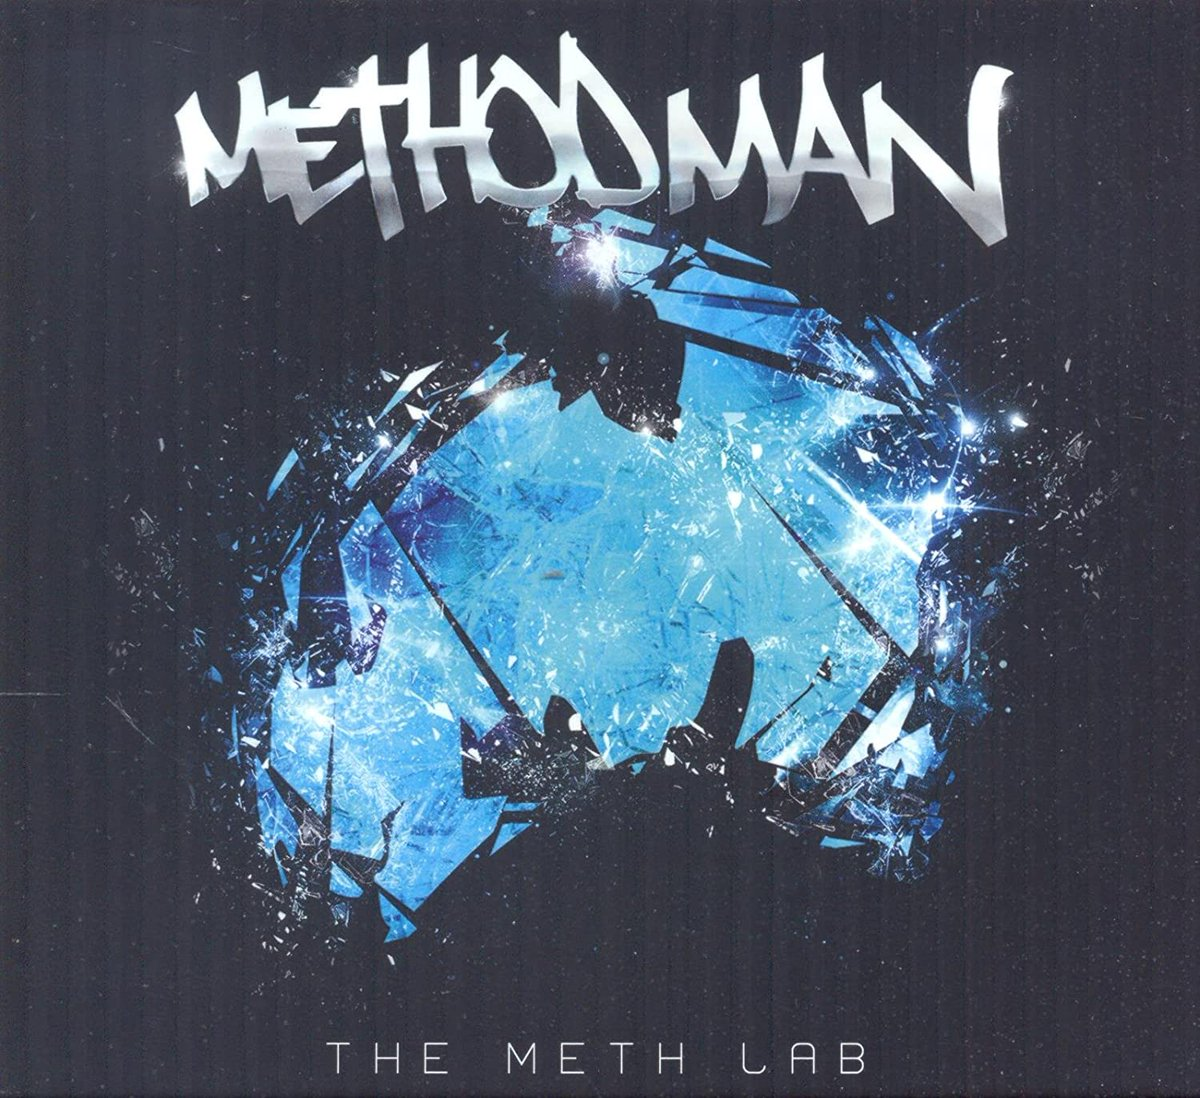 In for it's title and the season, even though it doesn't feel like it here...  It's M-E-T-H-O-D man, but not live sorry:   #Rap #HipHop #MethodMan #DaList #Playlists #CovidPlaylist #QuarantinePlaylist #Music #GoodTunes #Playlist #QuarantineLife #Quarantine